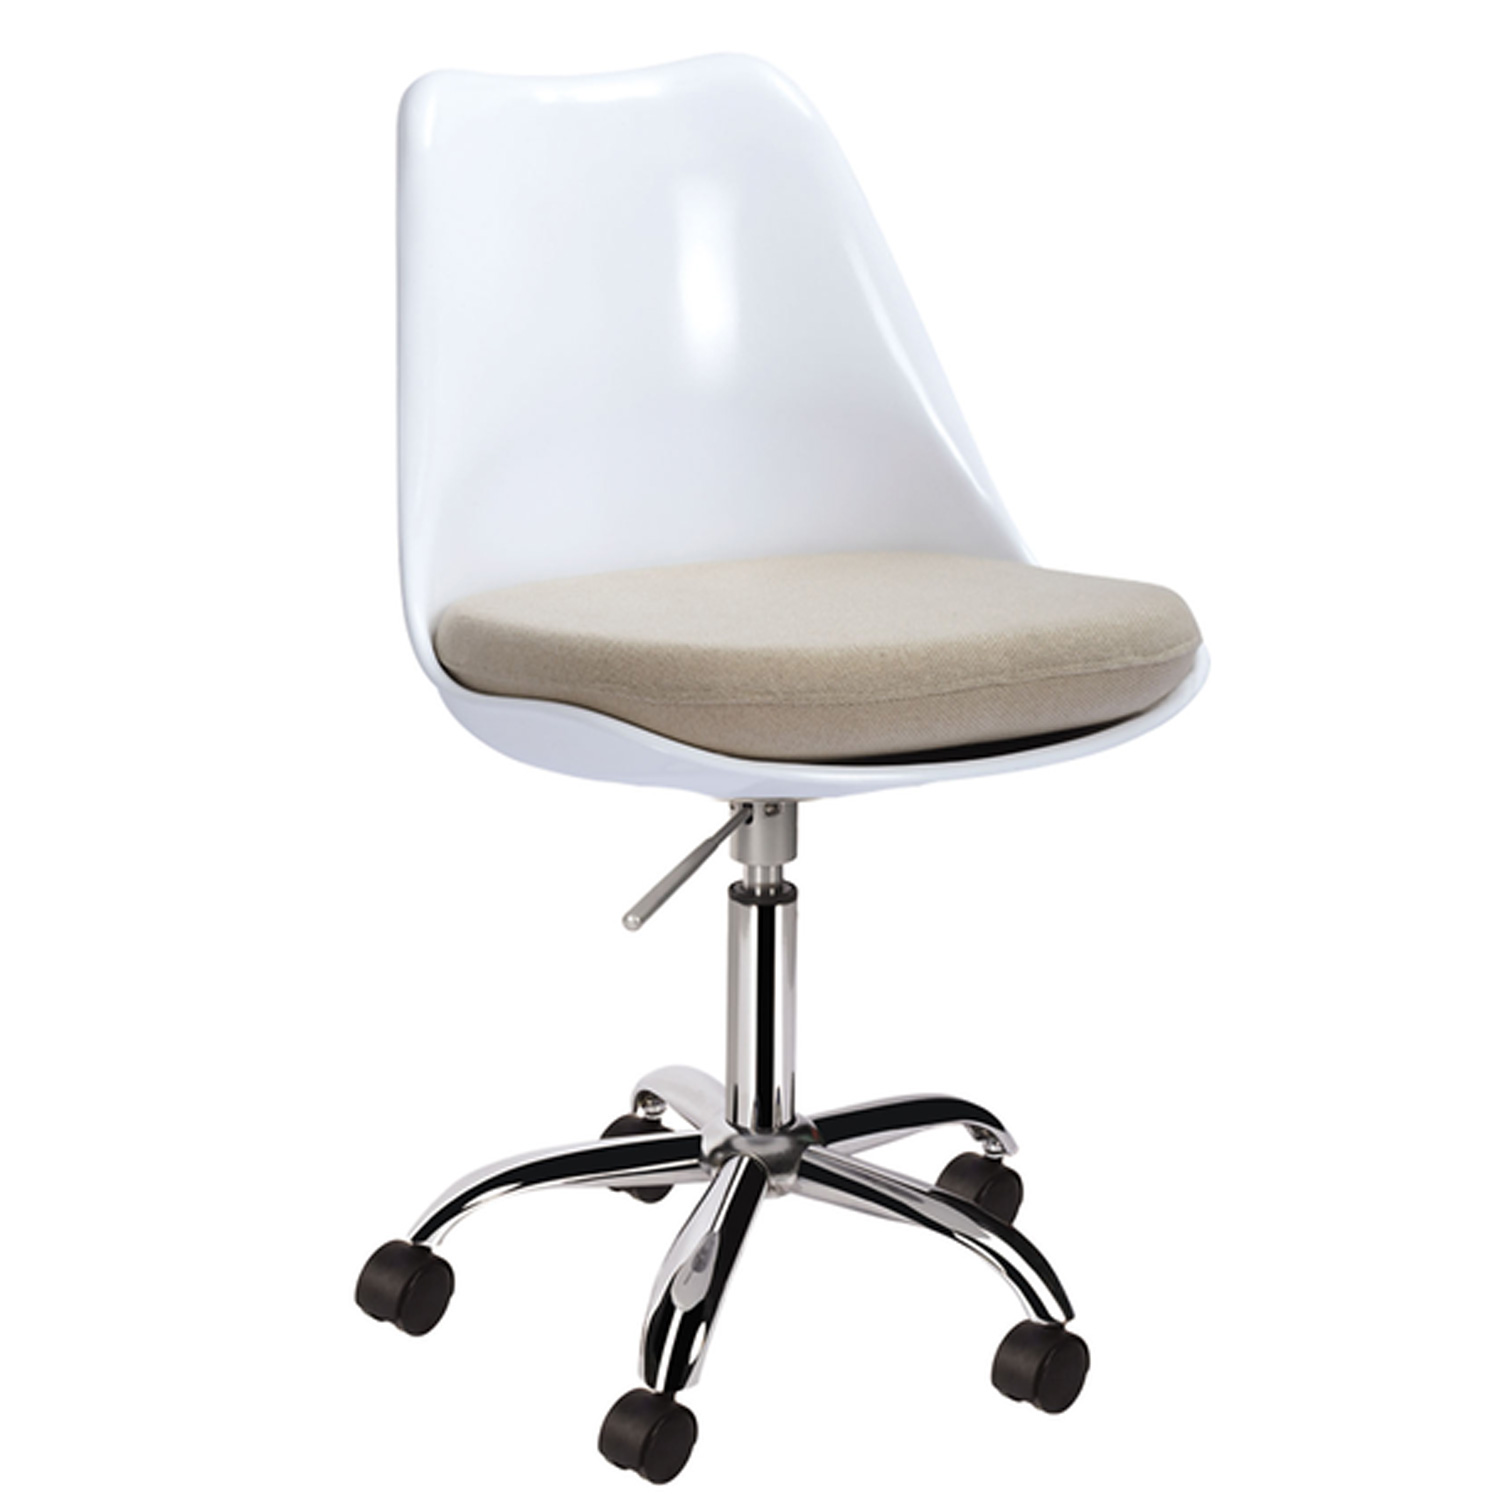 Tulip Chair Replica practical replica tulip office chair | clever little monkey